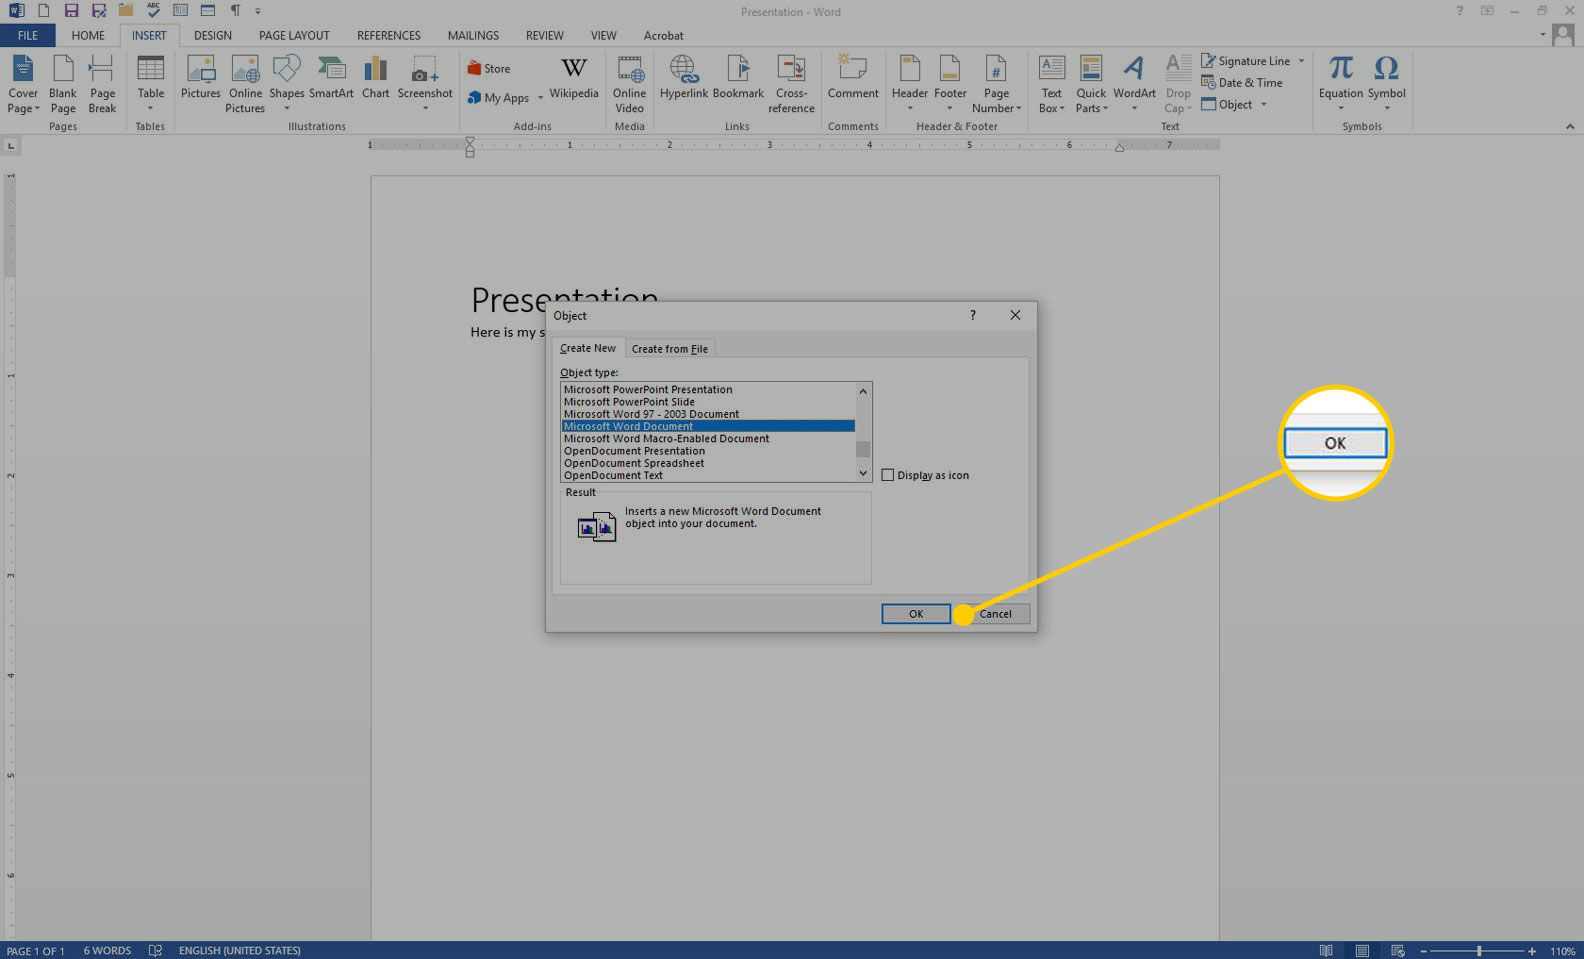 Create New Object window in Word with the OK button highlighted